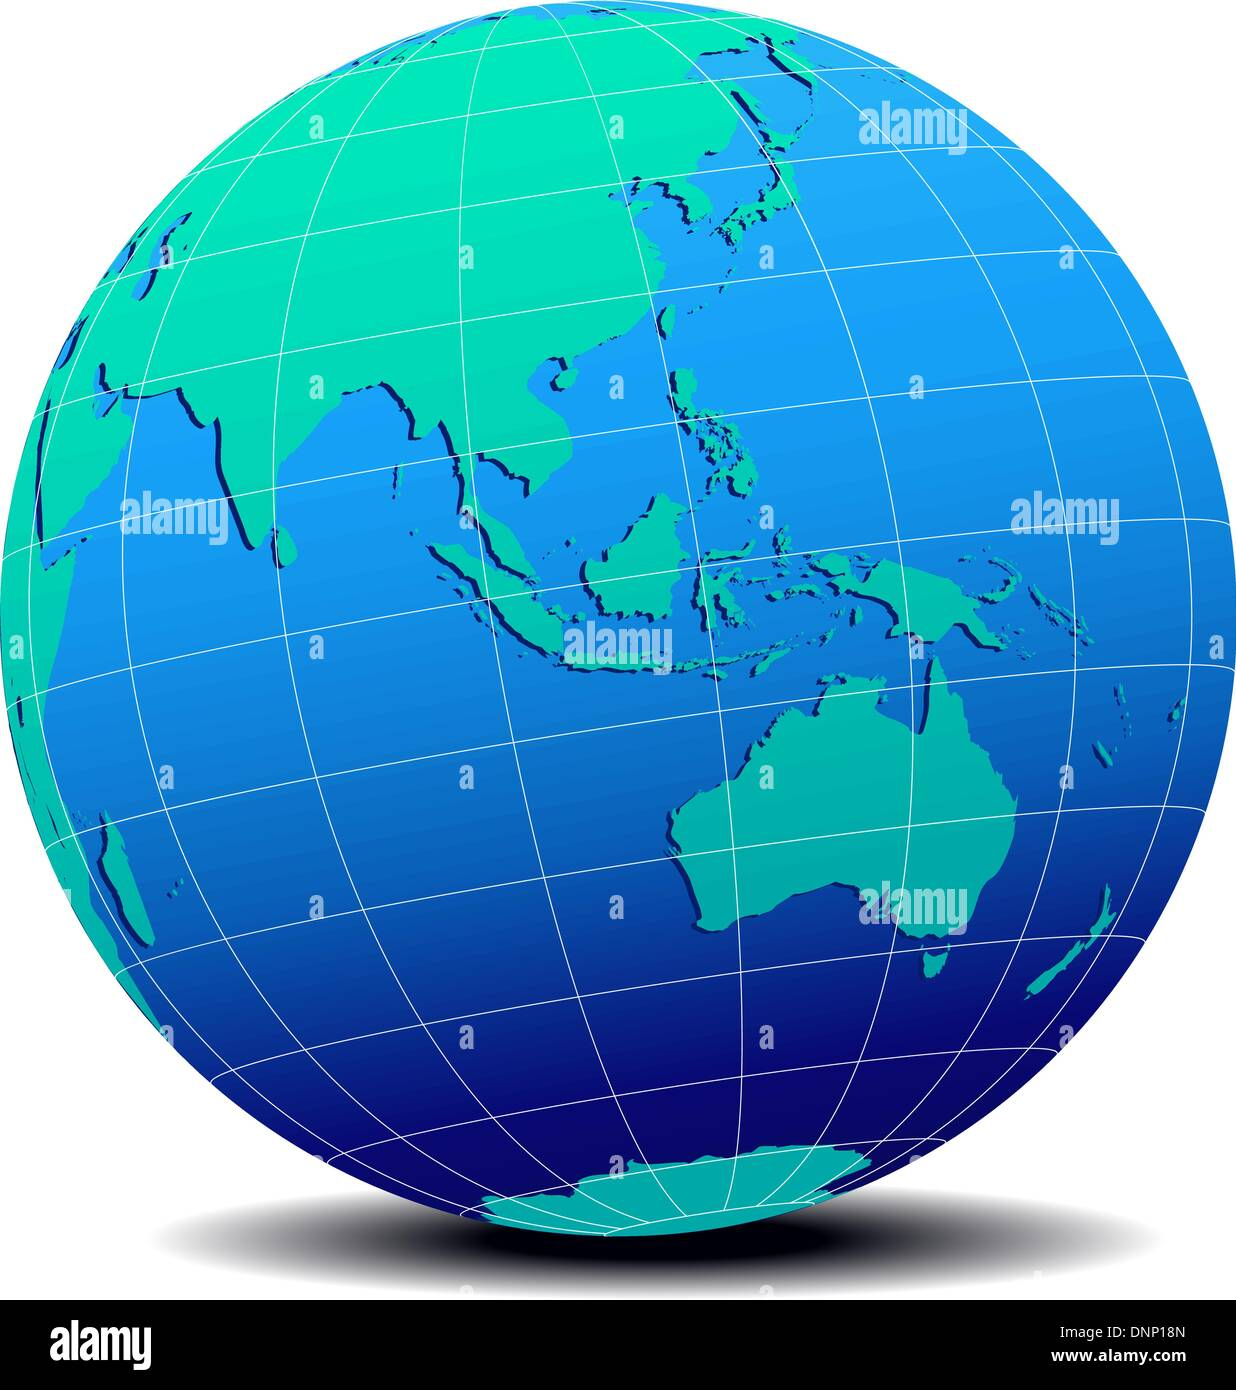 vector map icon of the world in globe form australia asia malaysia philippines